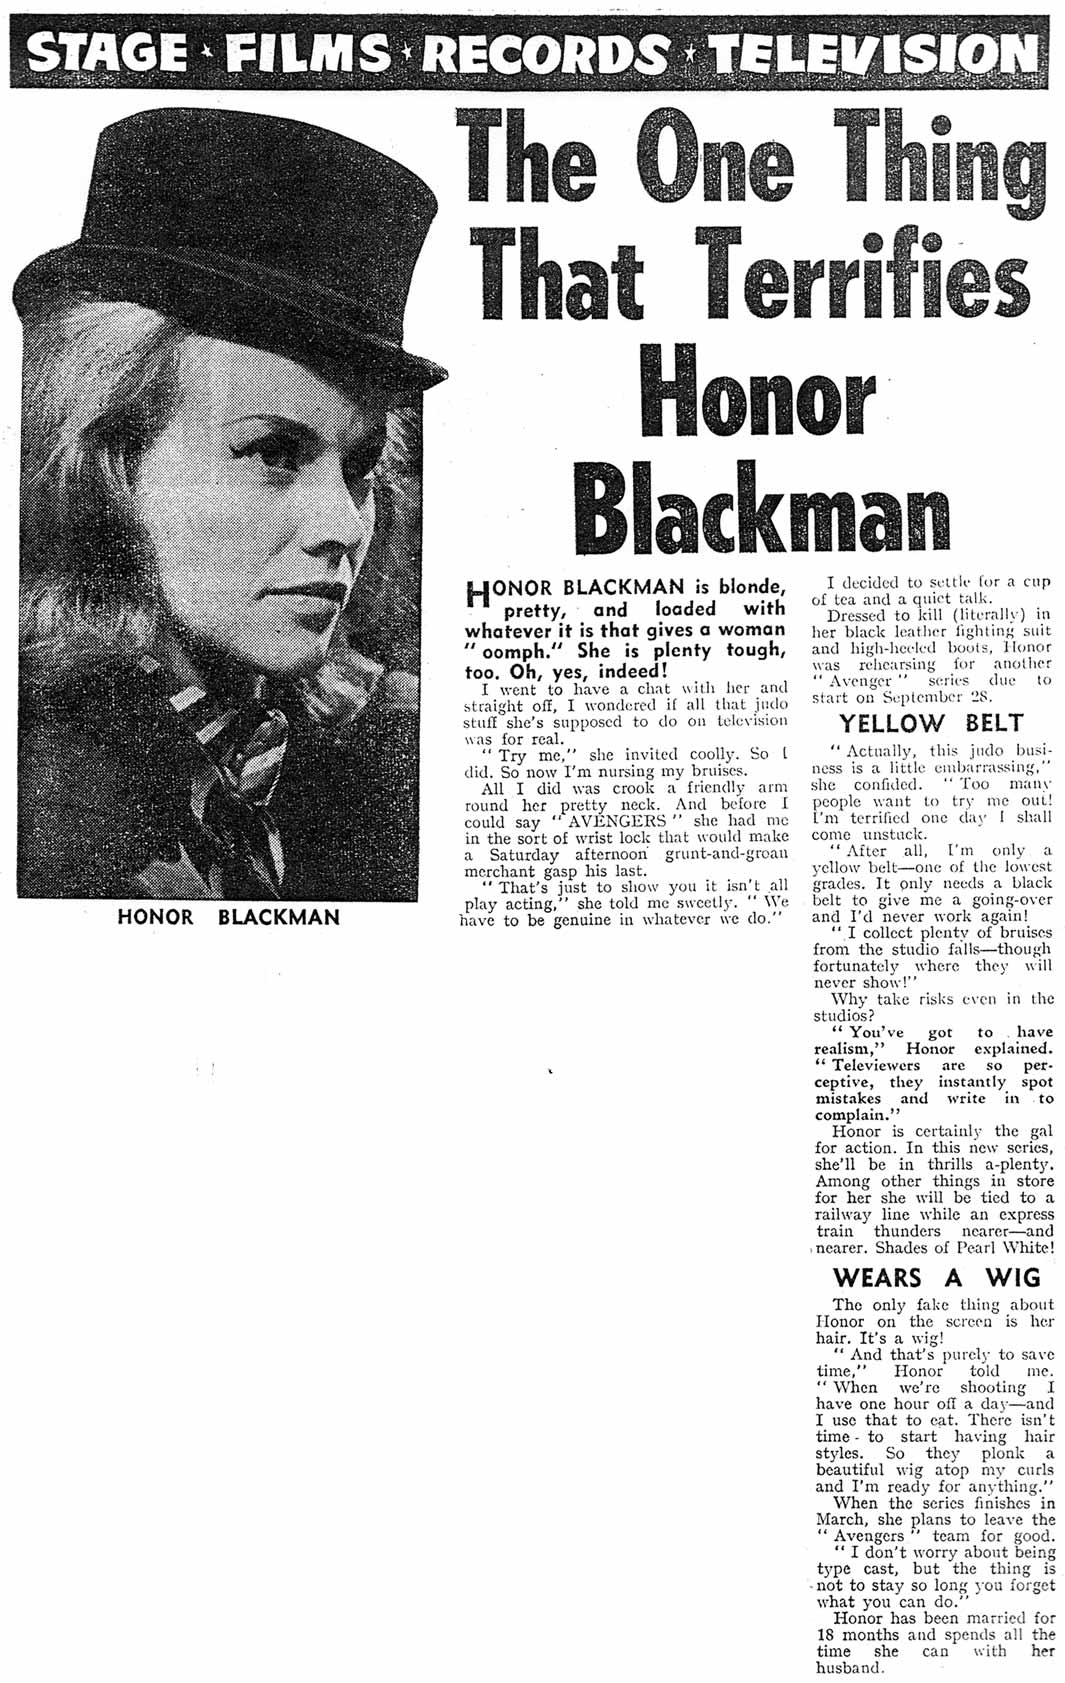 Interview with Honor Blackman from 1963